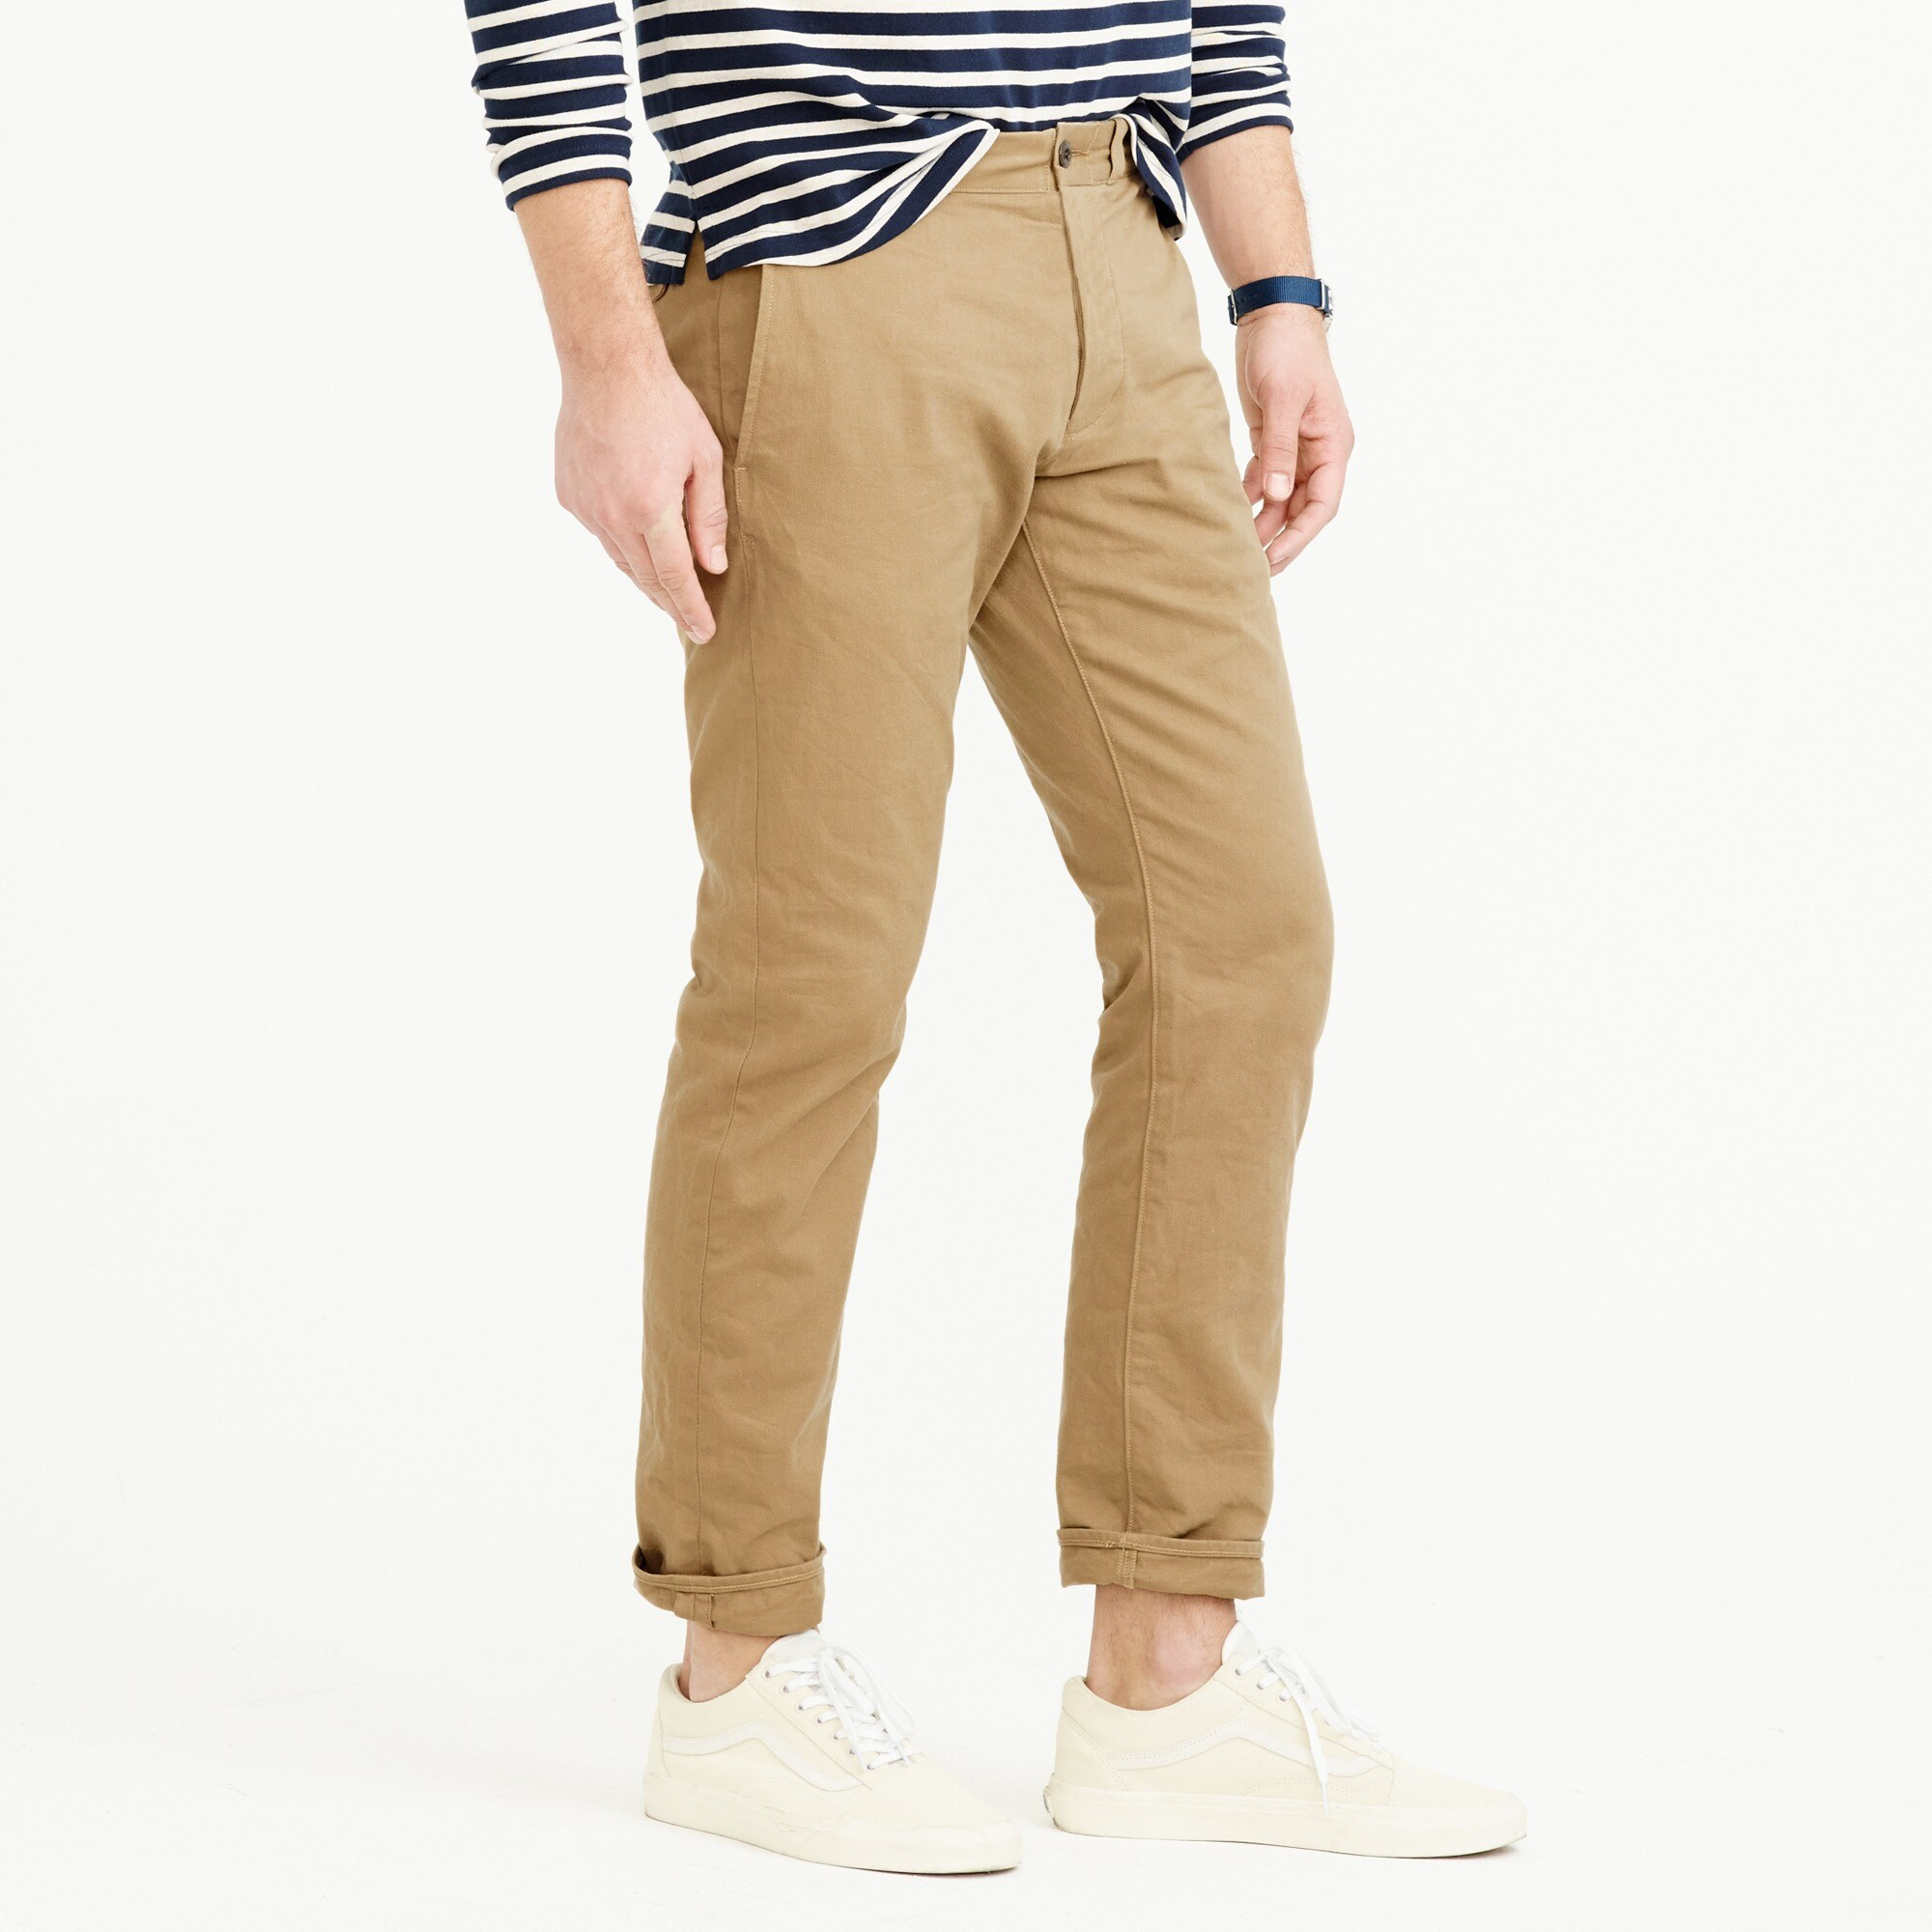 Wallace & Barnes selvedge chino pant